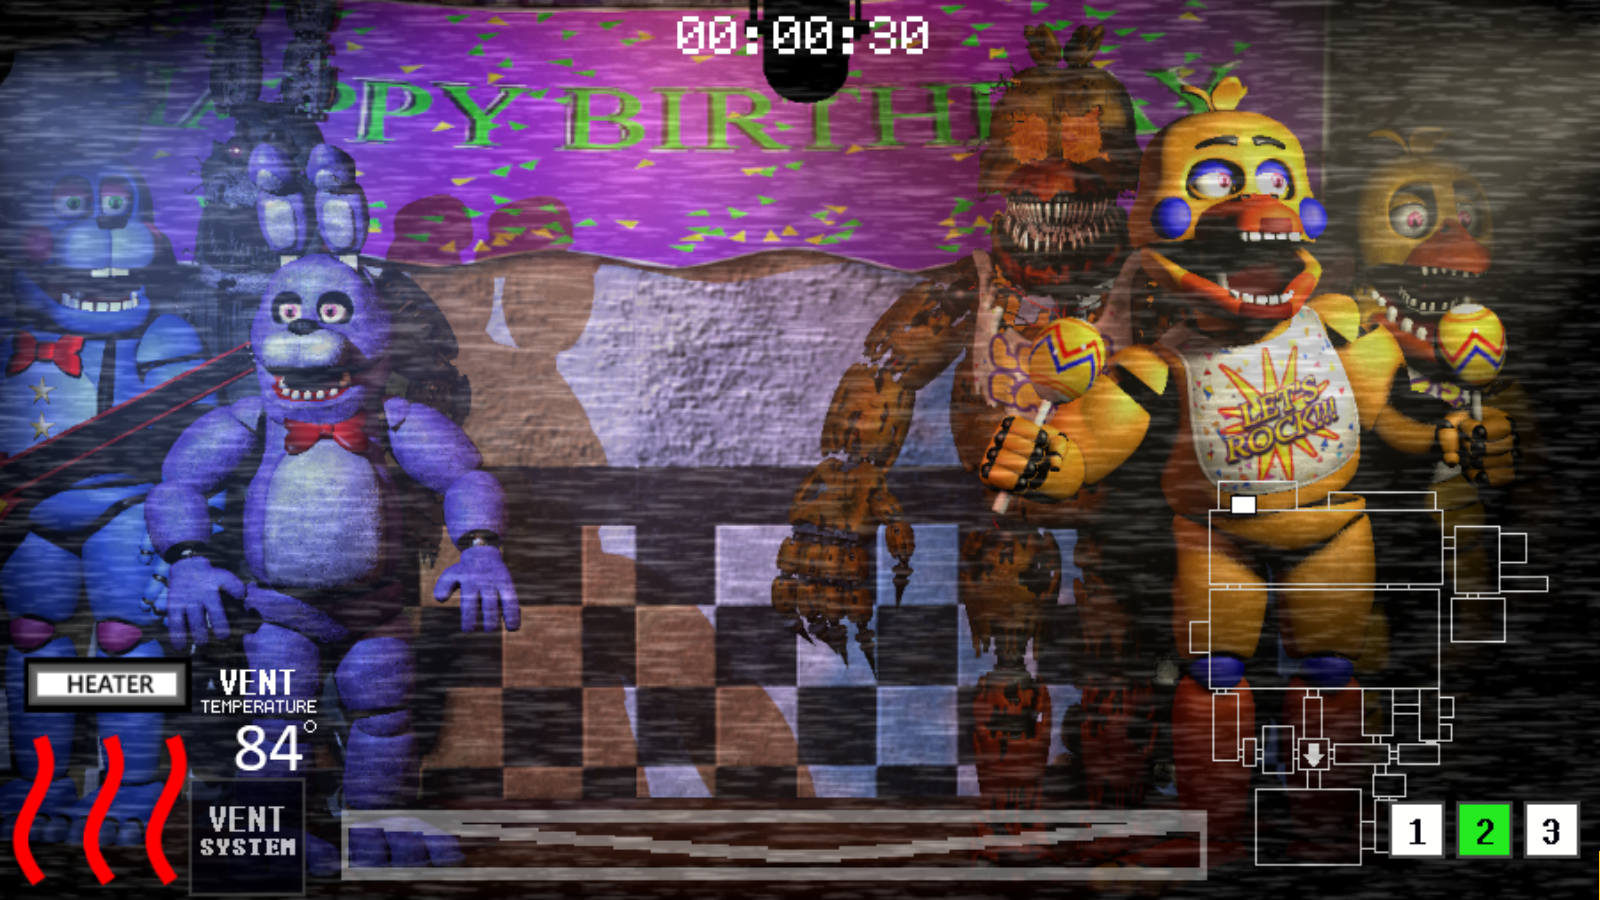 Five Nights at Freddy's Fangames on Game Jolt | fnaf | Five nights